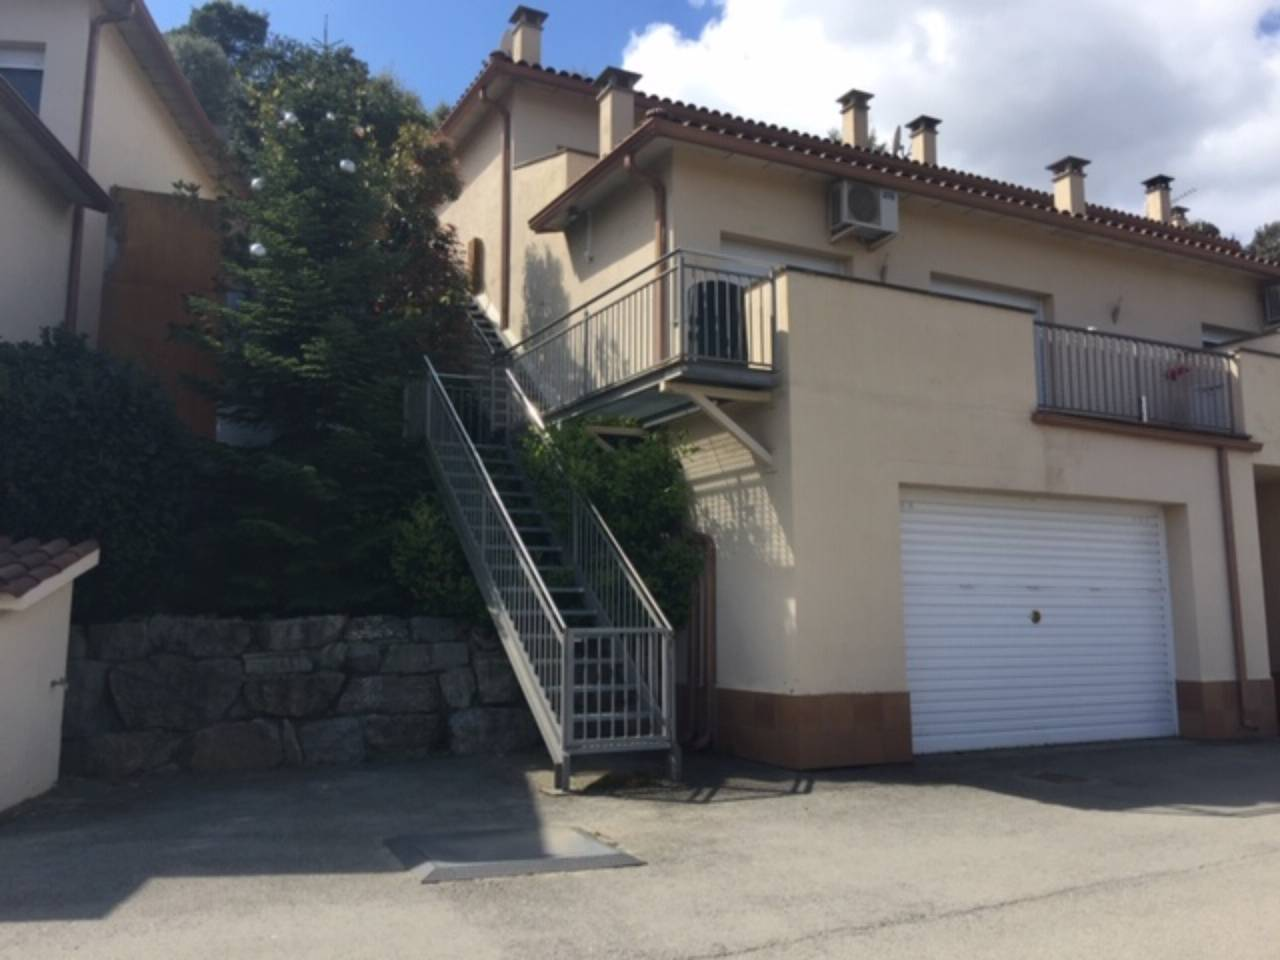 Townhouse for sale in Bigues